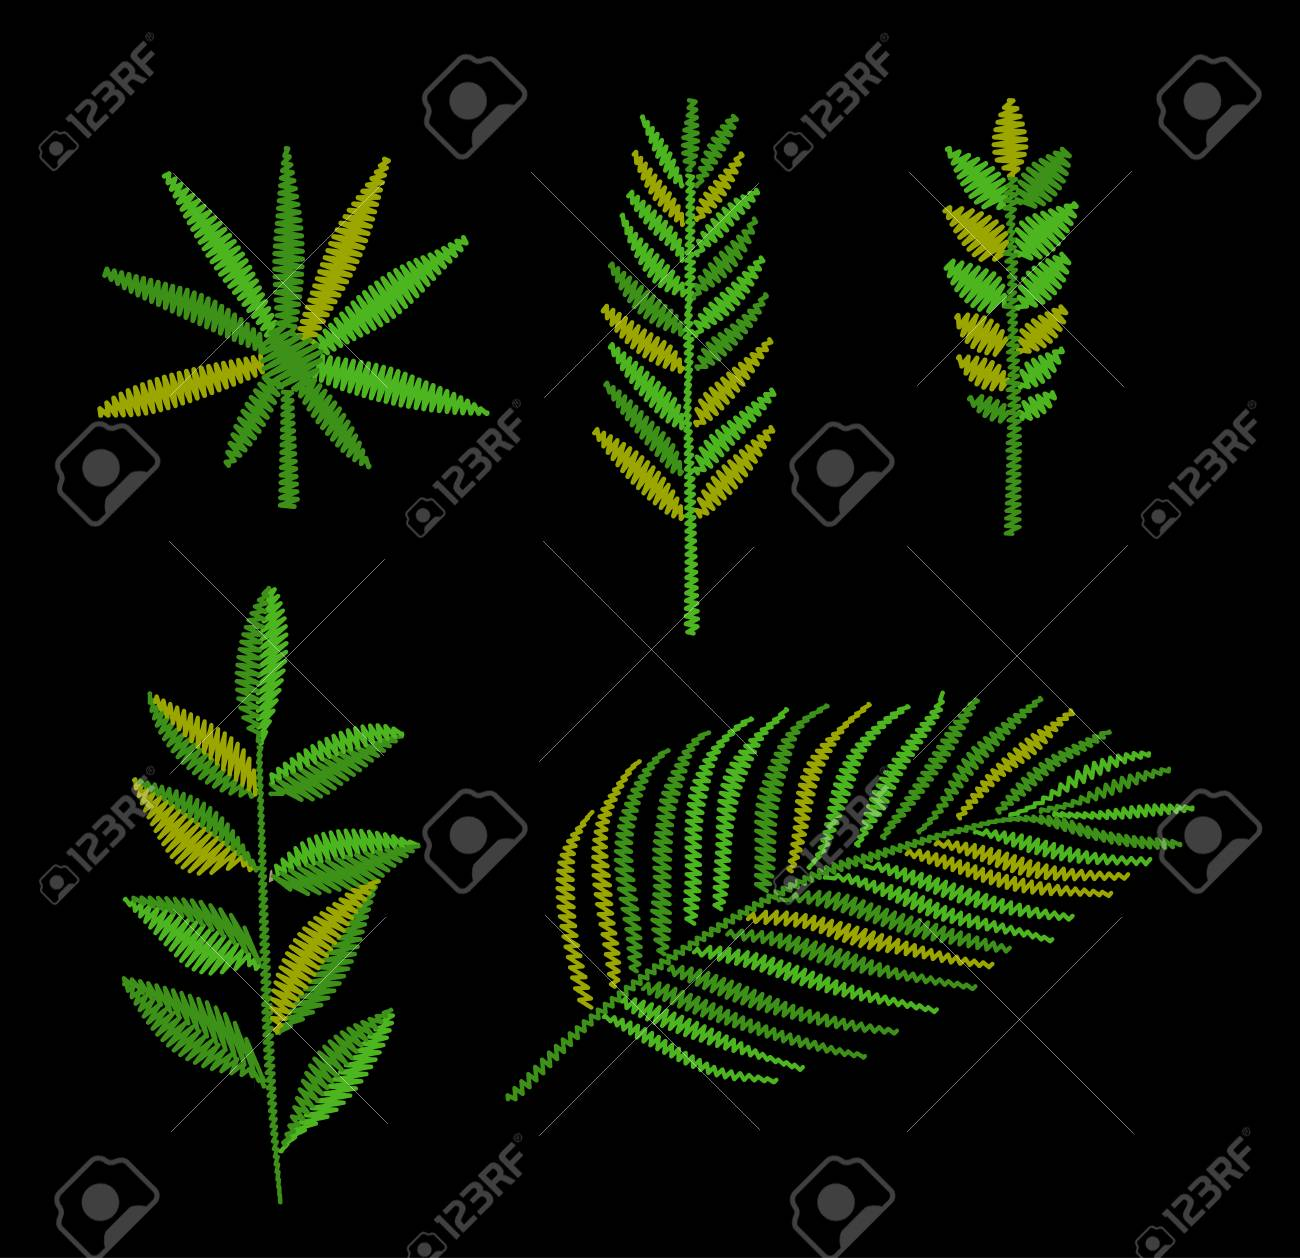 Tropical Leaves Embroidery Vector Hand Drawing Royalty Free Cliparts Vectors And Stock Illustration Image 69919190 0 flares 0 flares ×. tropical leaves embroidery vector hand drawing